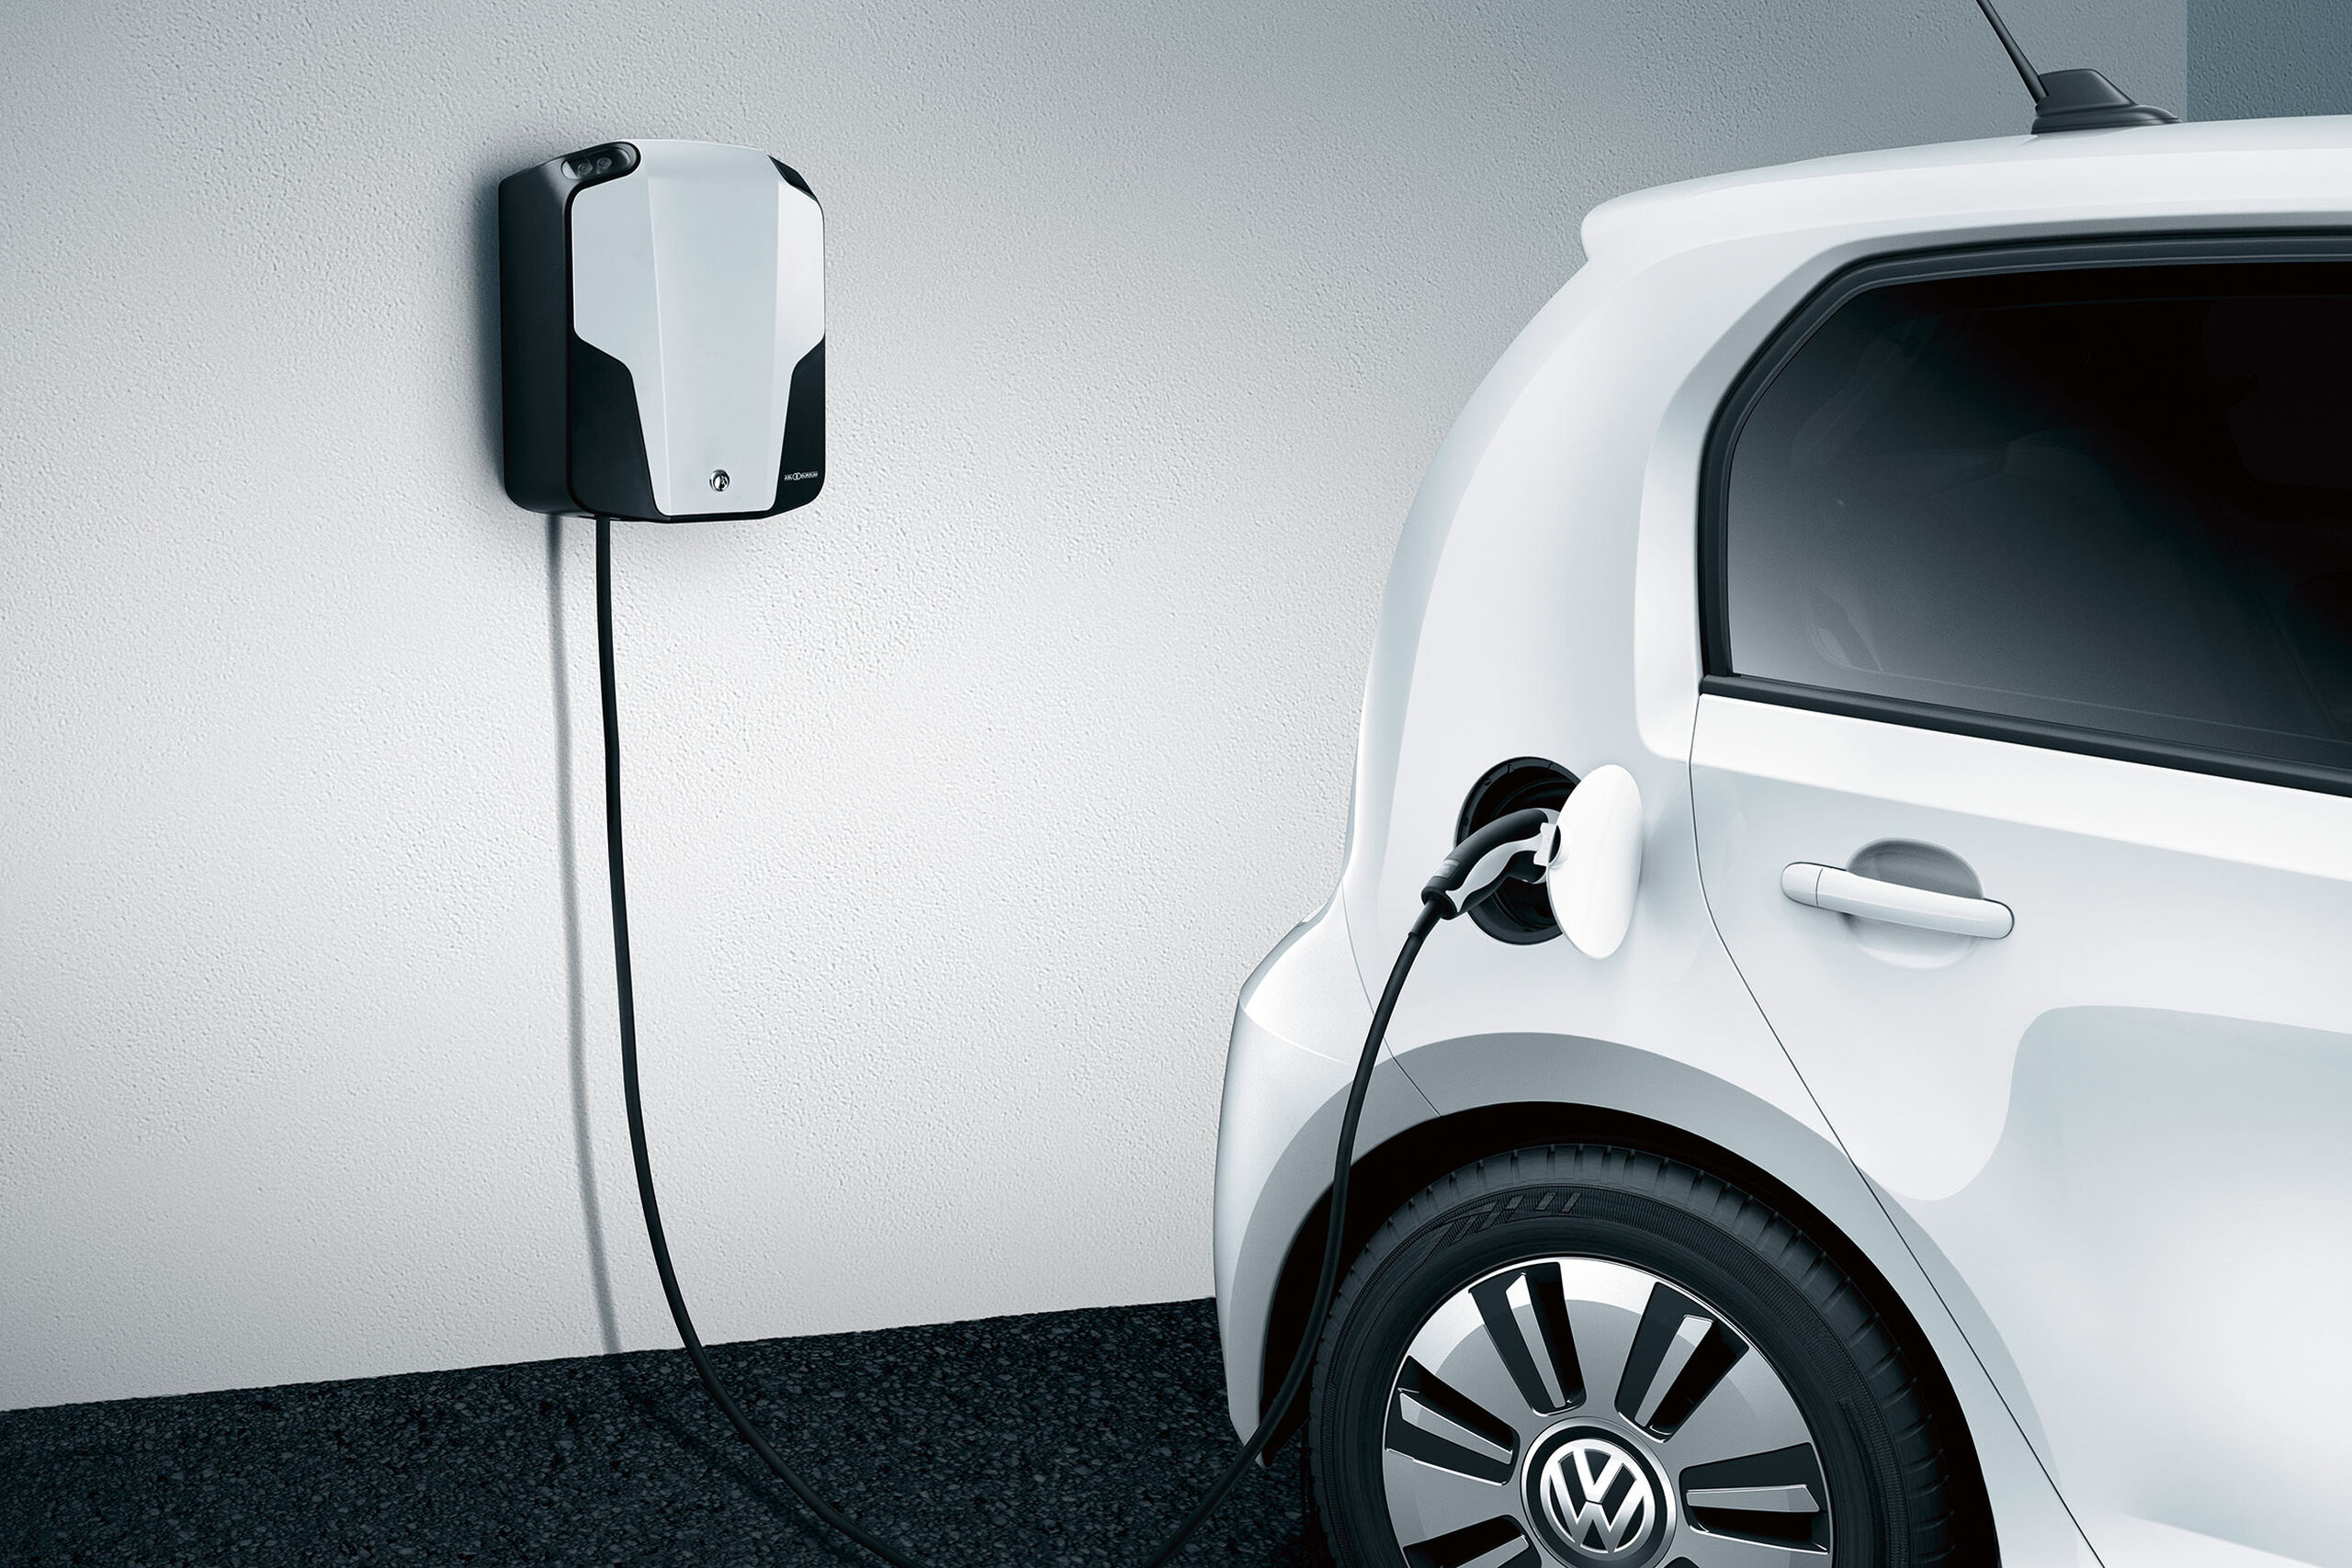 vw volkswagen e-up! elektroauto weiß ladestation